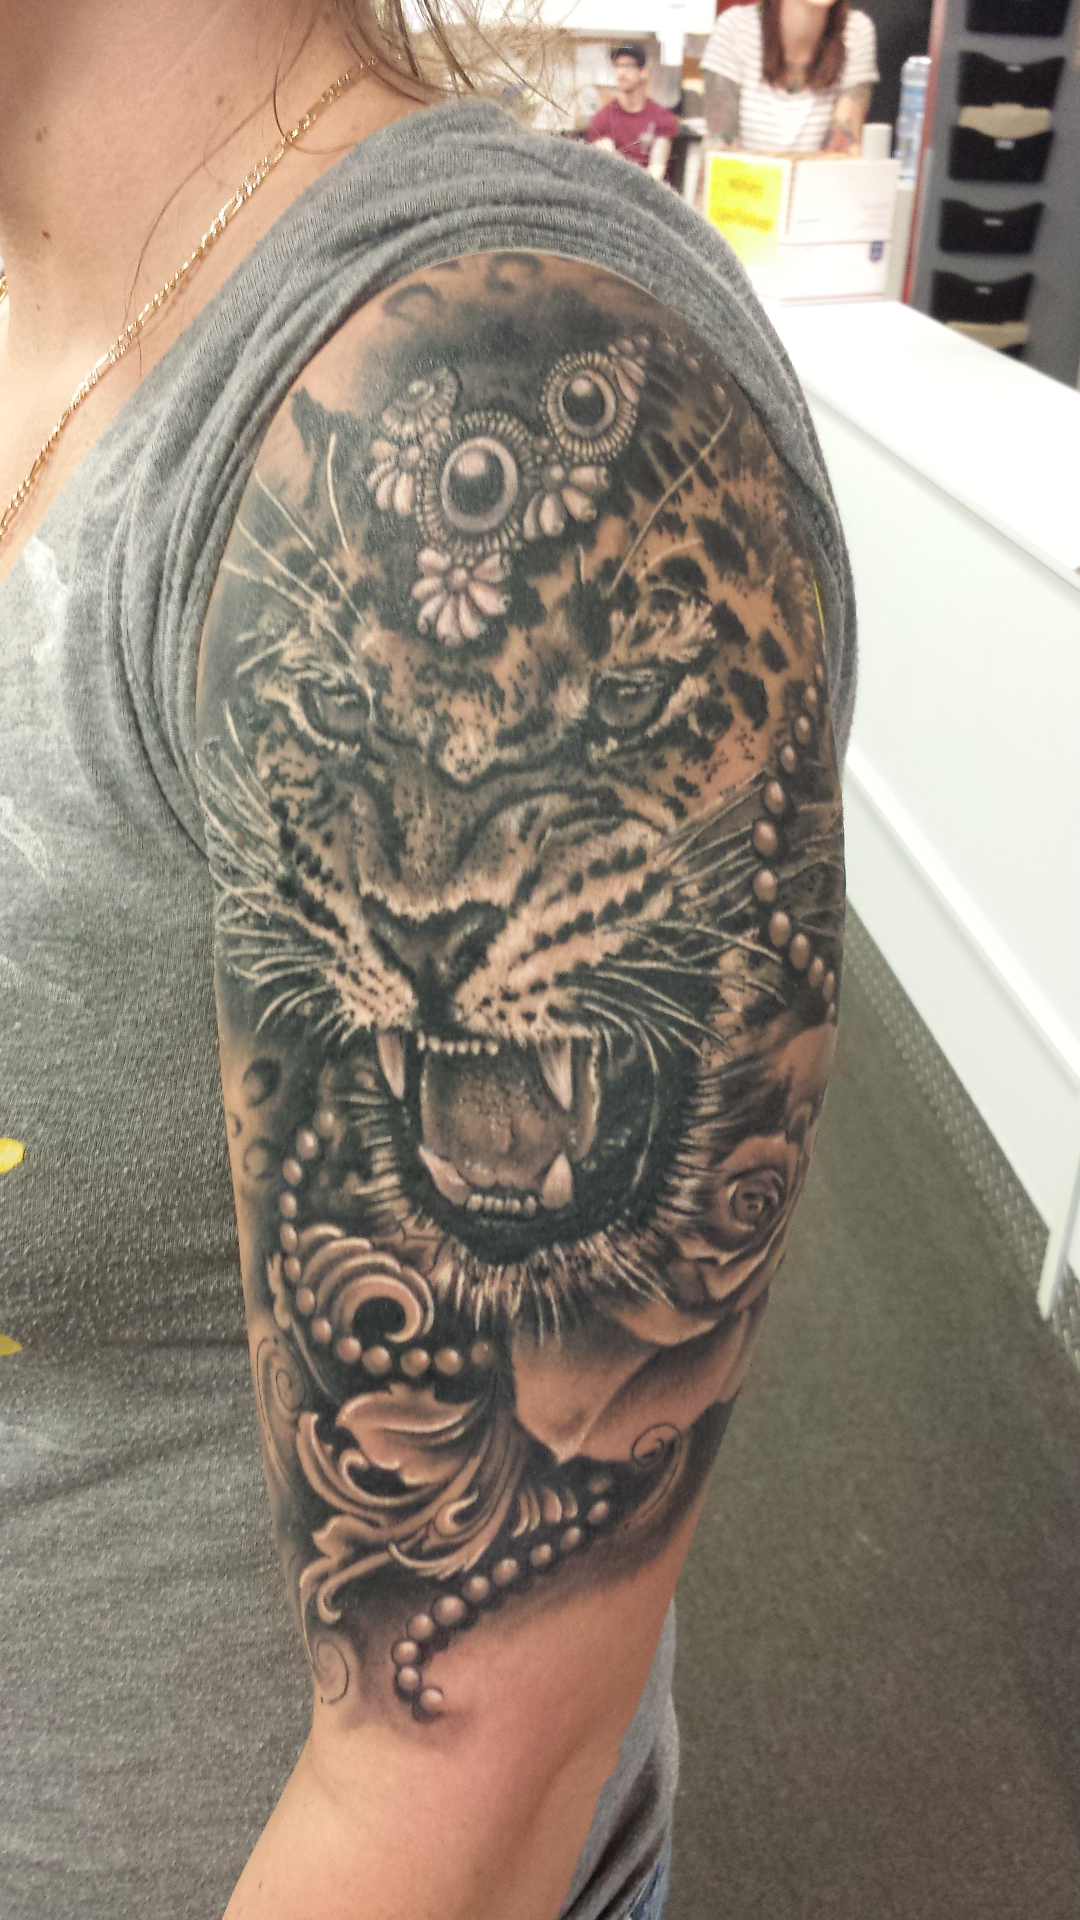 Leopard tattoo done by Wayne